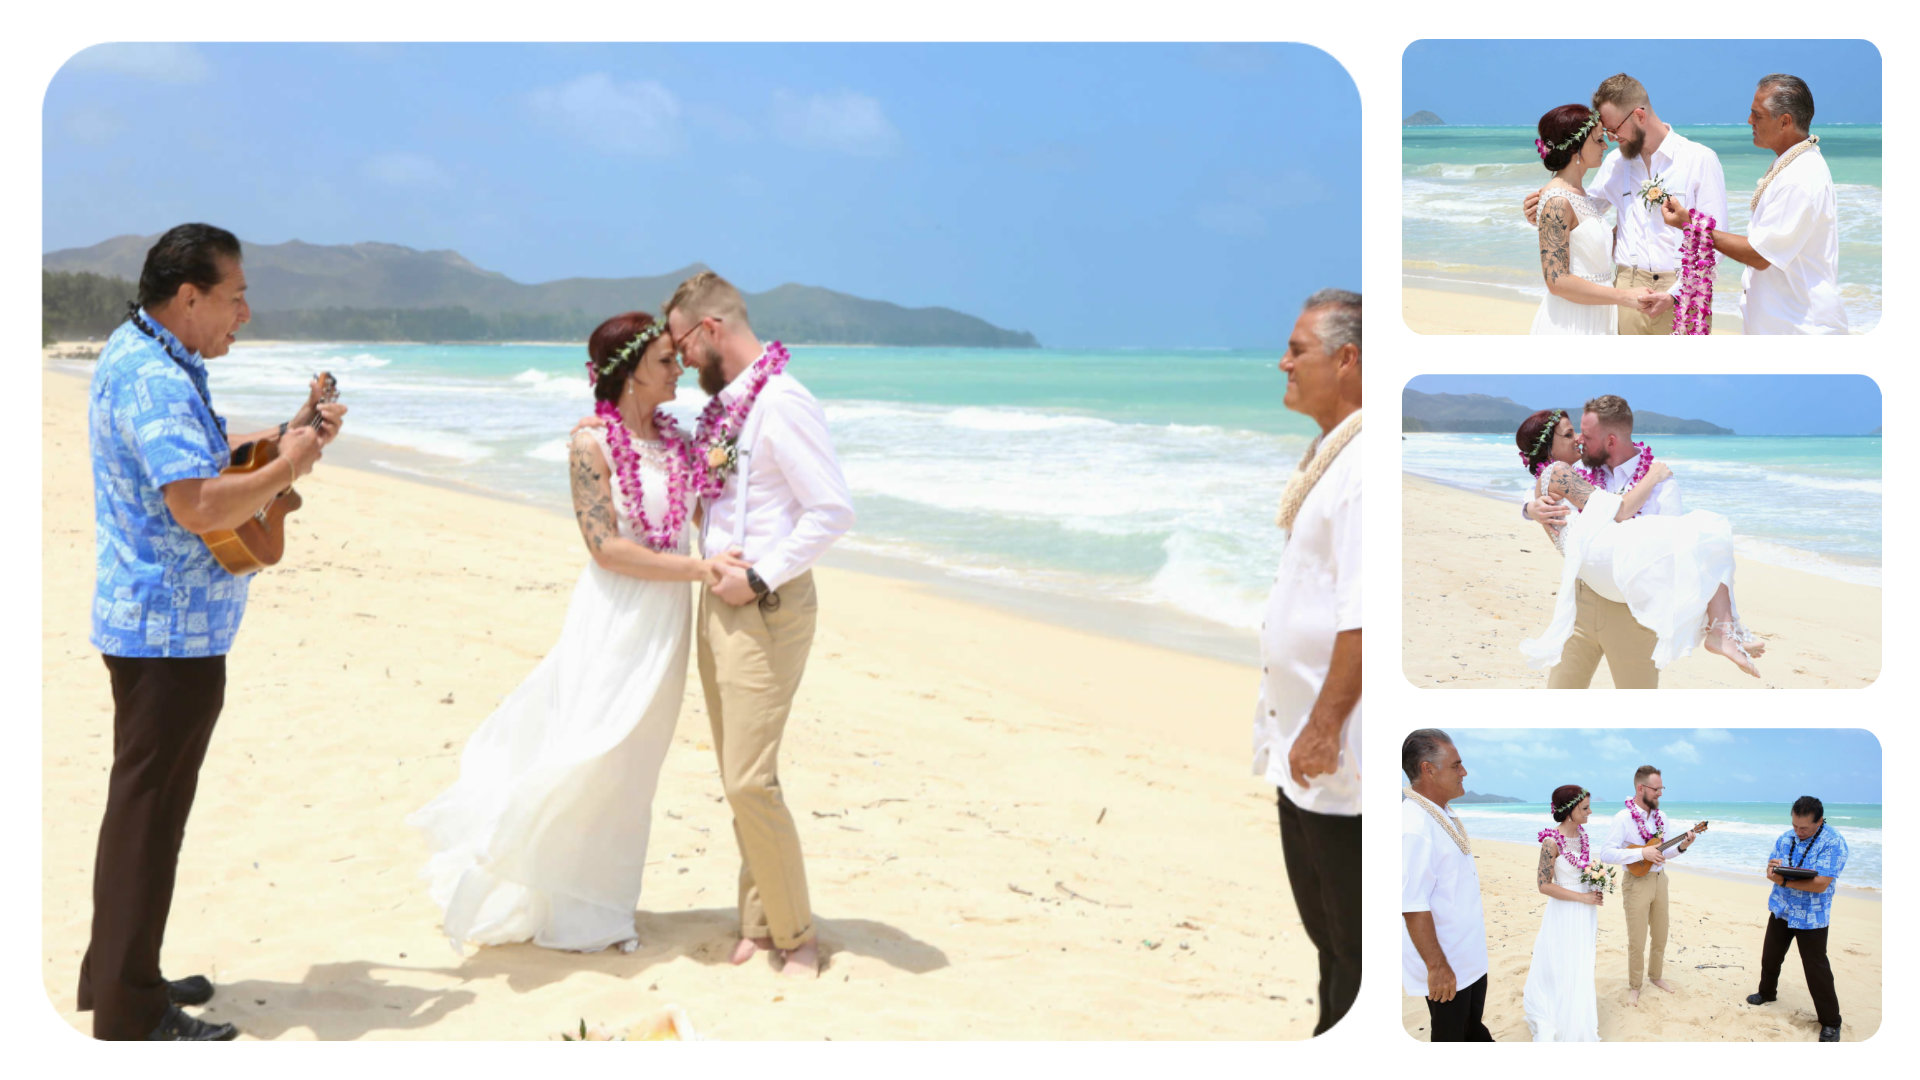 83eae8f3 For Caitlin and Adam, their Hawaii beach wedding was the happiest day of  their lives. On April 12, 2019 Adam realized they had a limousine service  and a ...